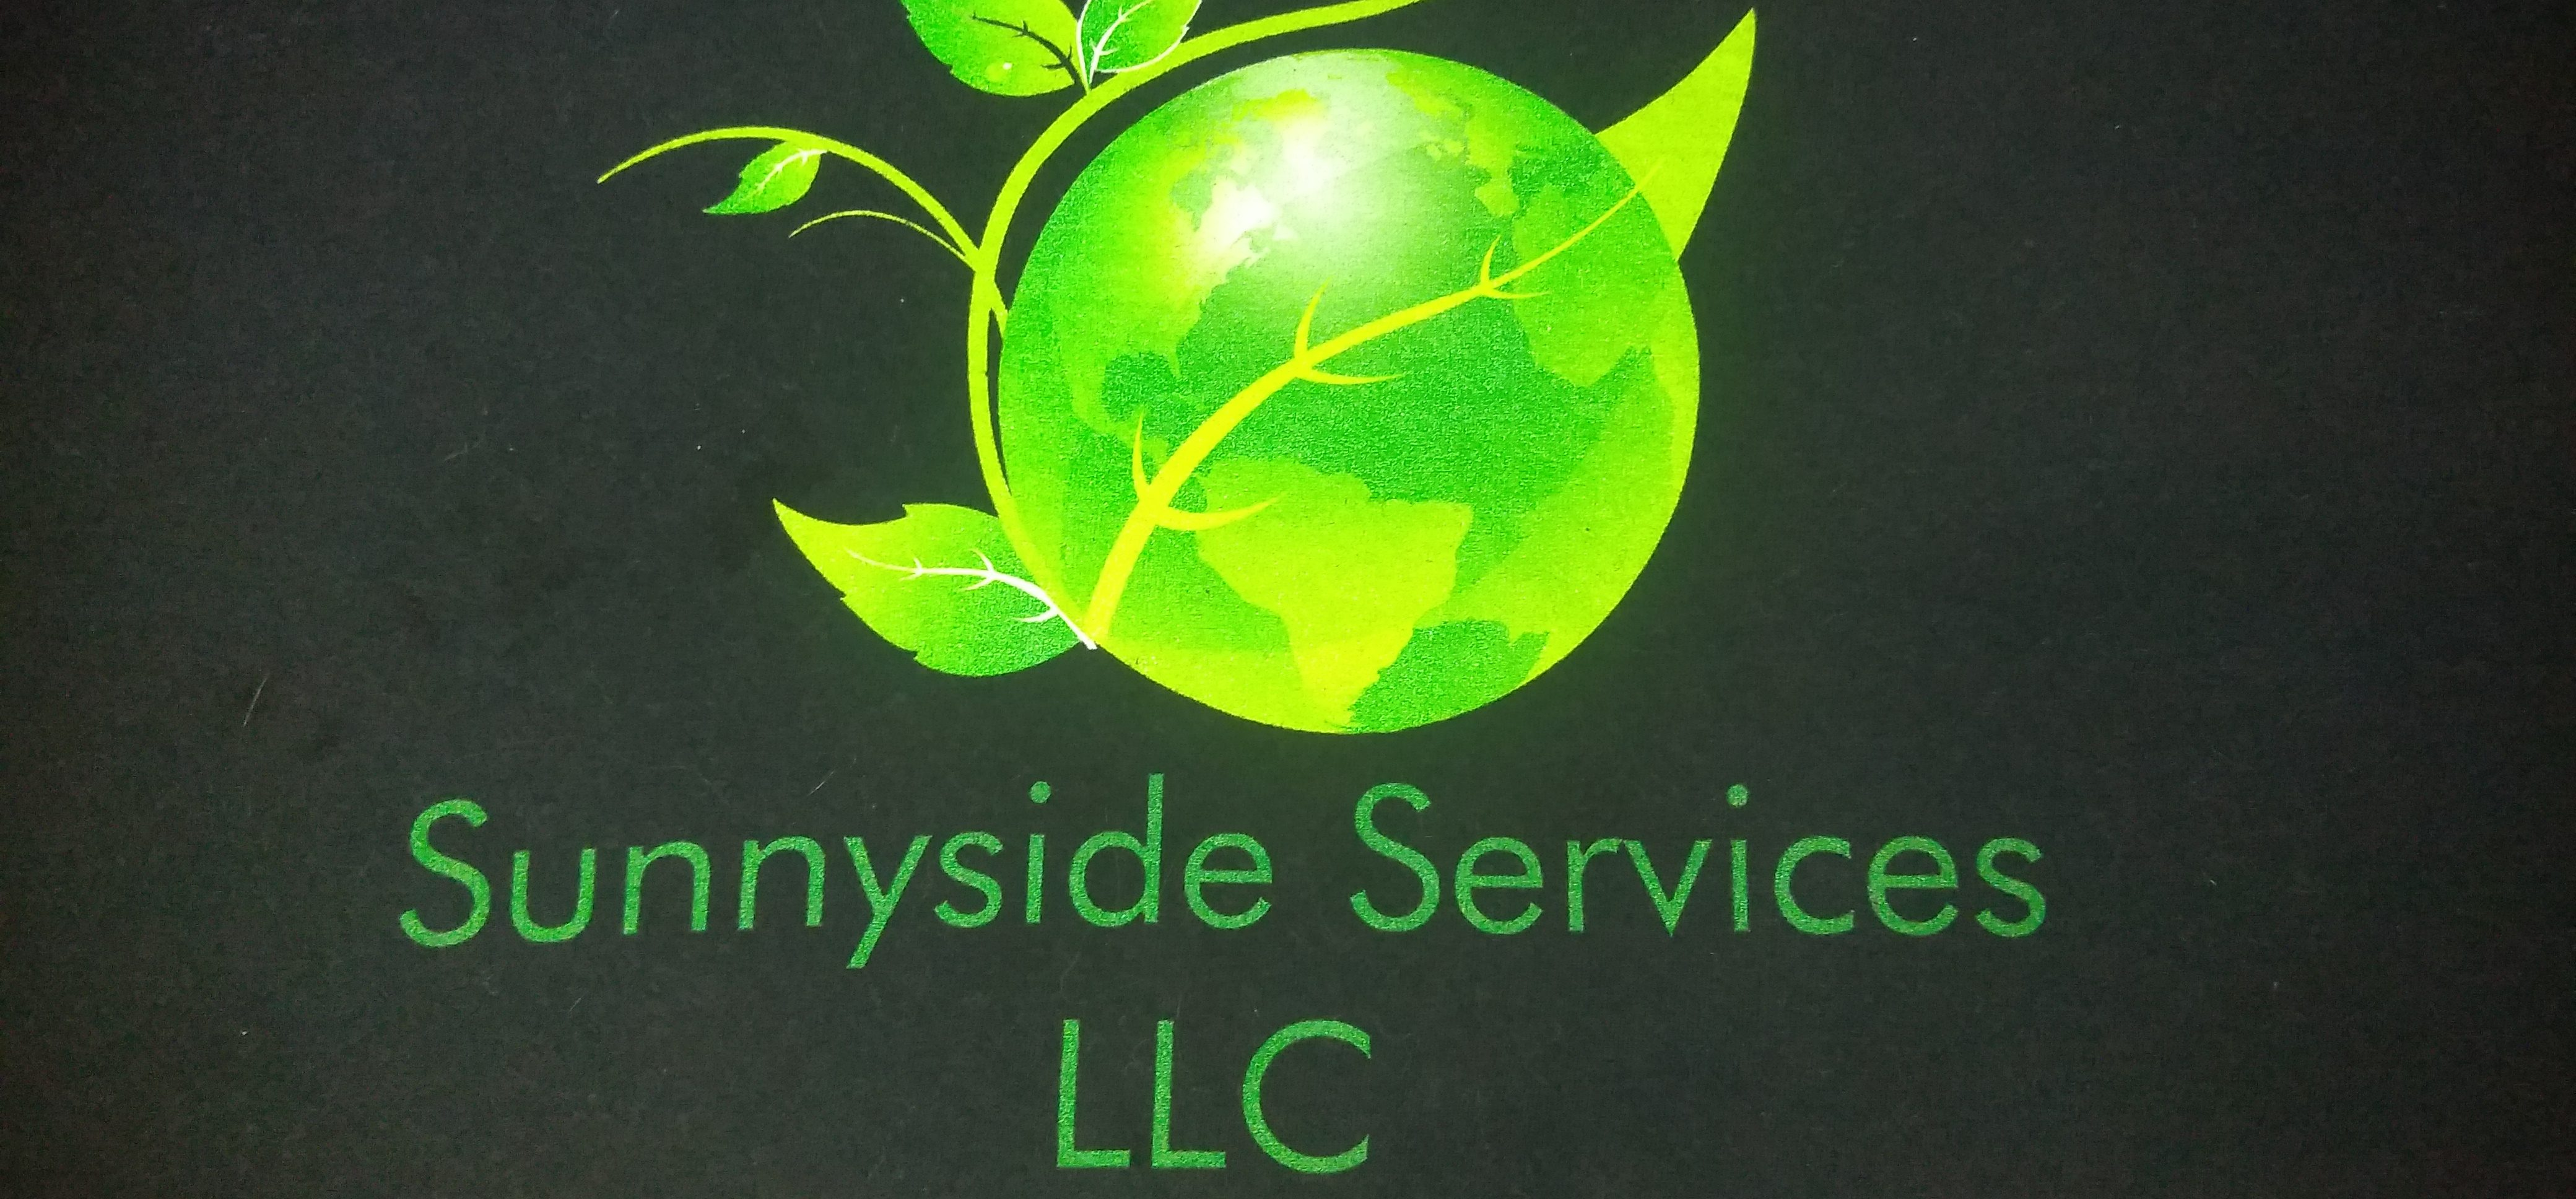 Sunnyside Services, LLC